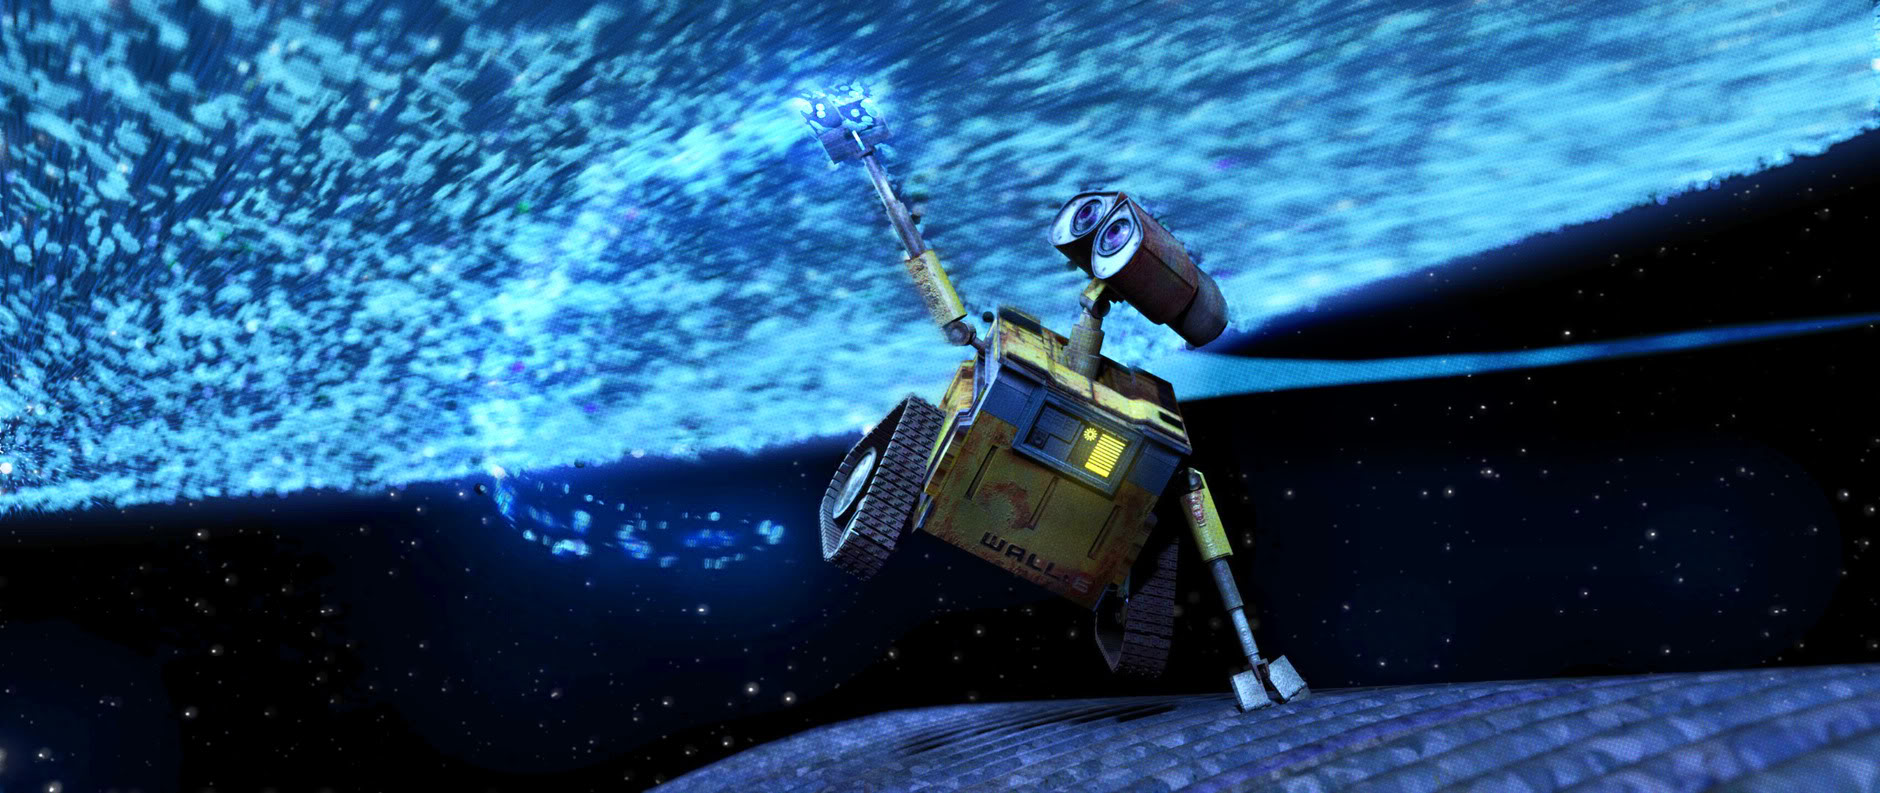 Wall-E-Stars-Flying